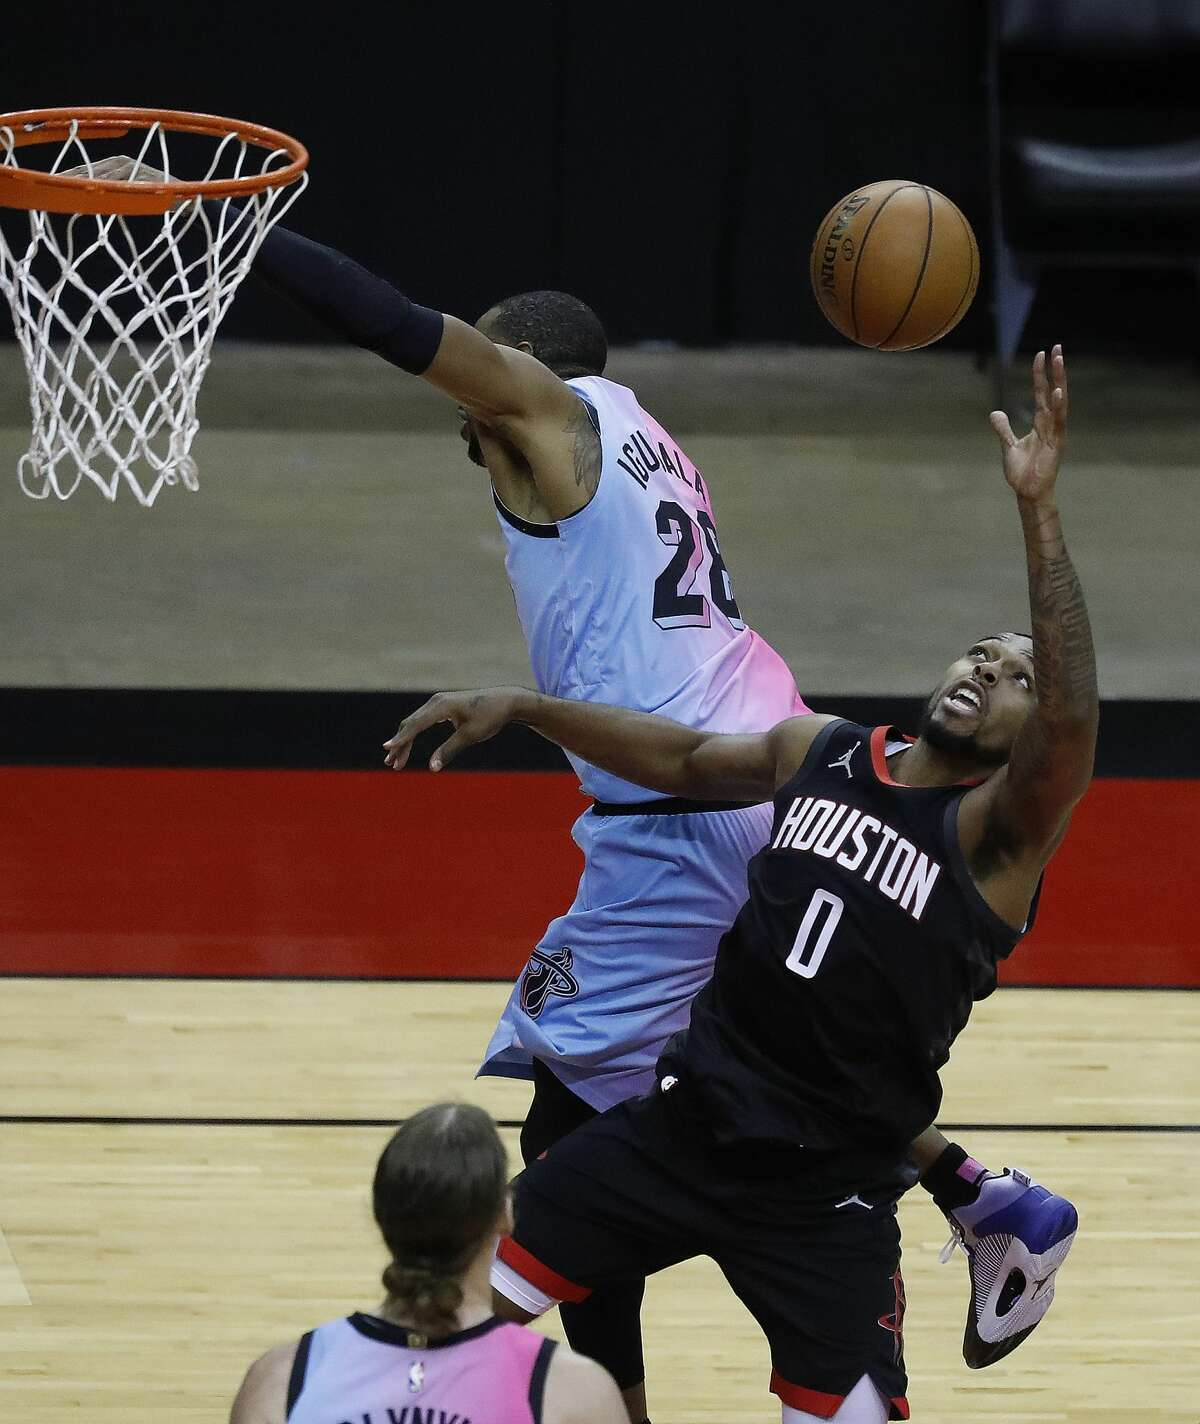 Houston Rockets guard Sterling Brown (0) goes up for a rebound against Miami Heat forward Andre Iguodala (28)during the second half of an NBA basketball game at Toyota Center, in Houston, Thursday, February 11, 2021.